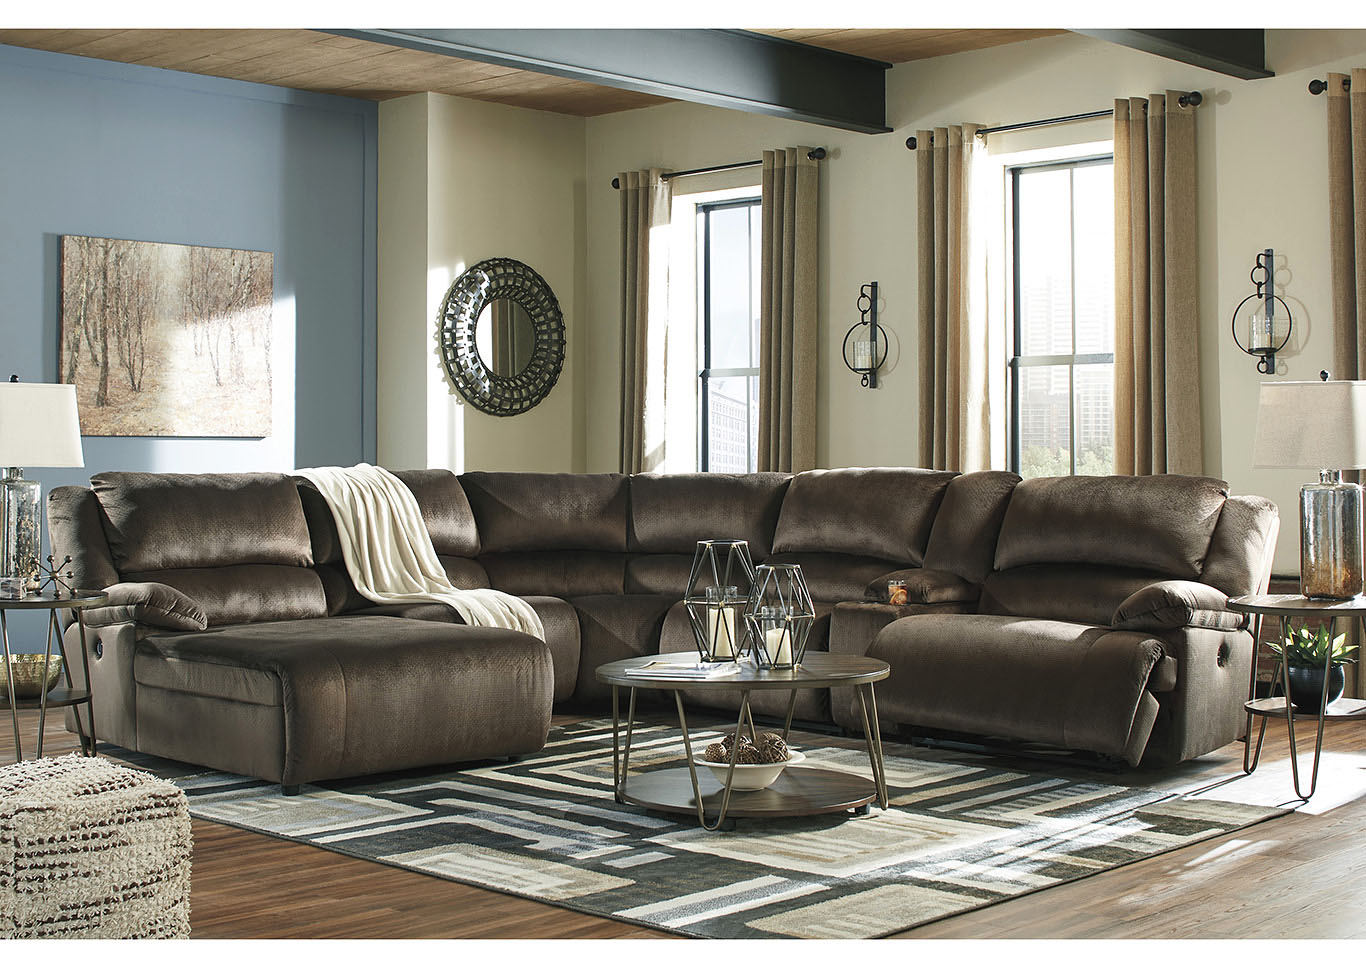 Clonmel 6 Piece Reclining Sectional with Chaise,Signature Design By Ashley